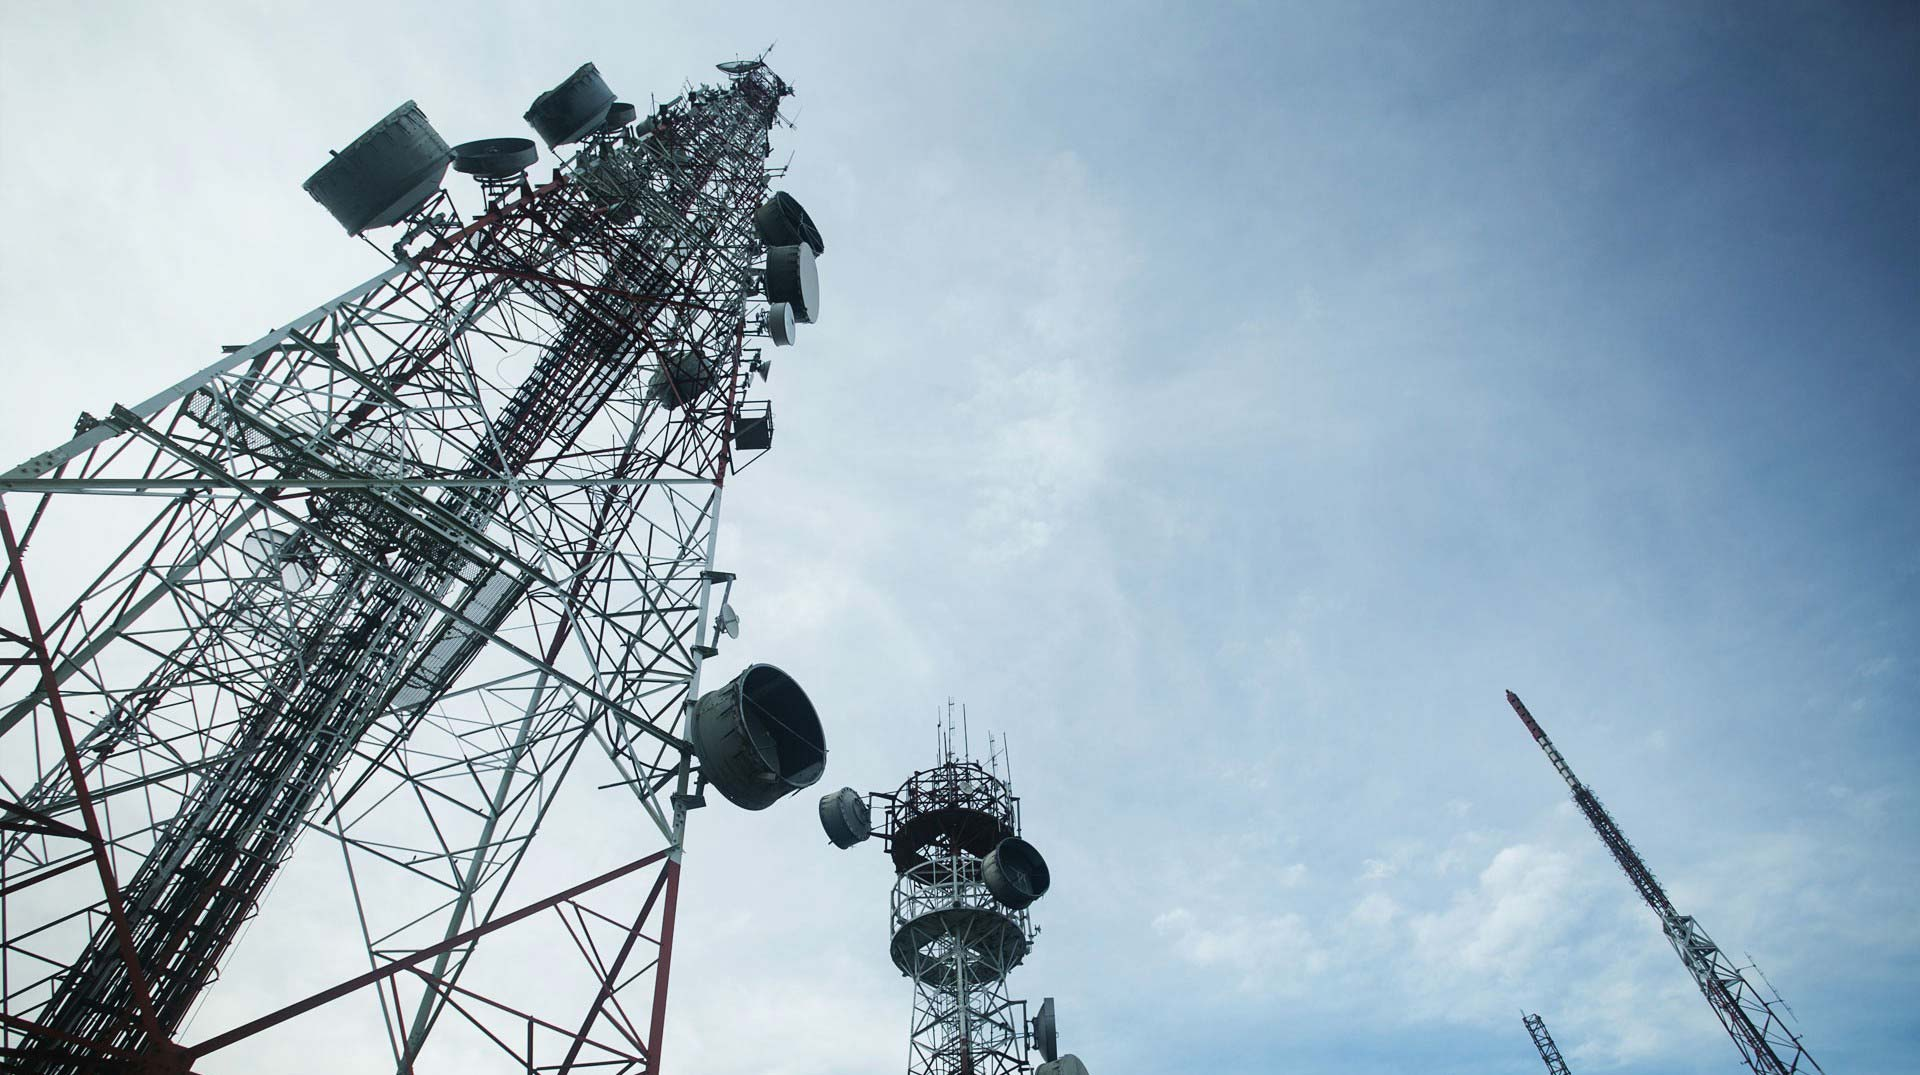 Cabinets, networks and telecom